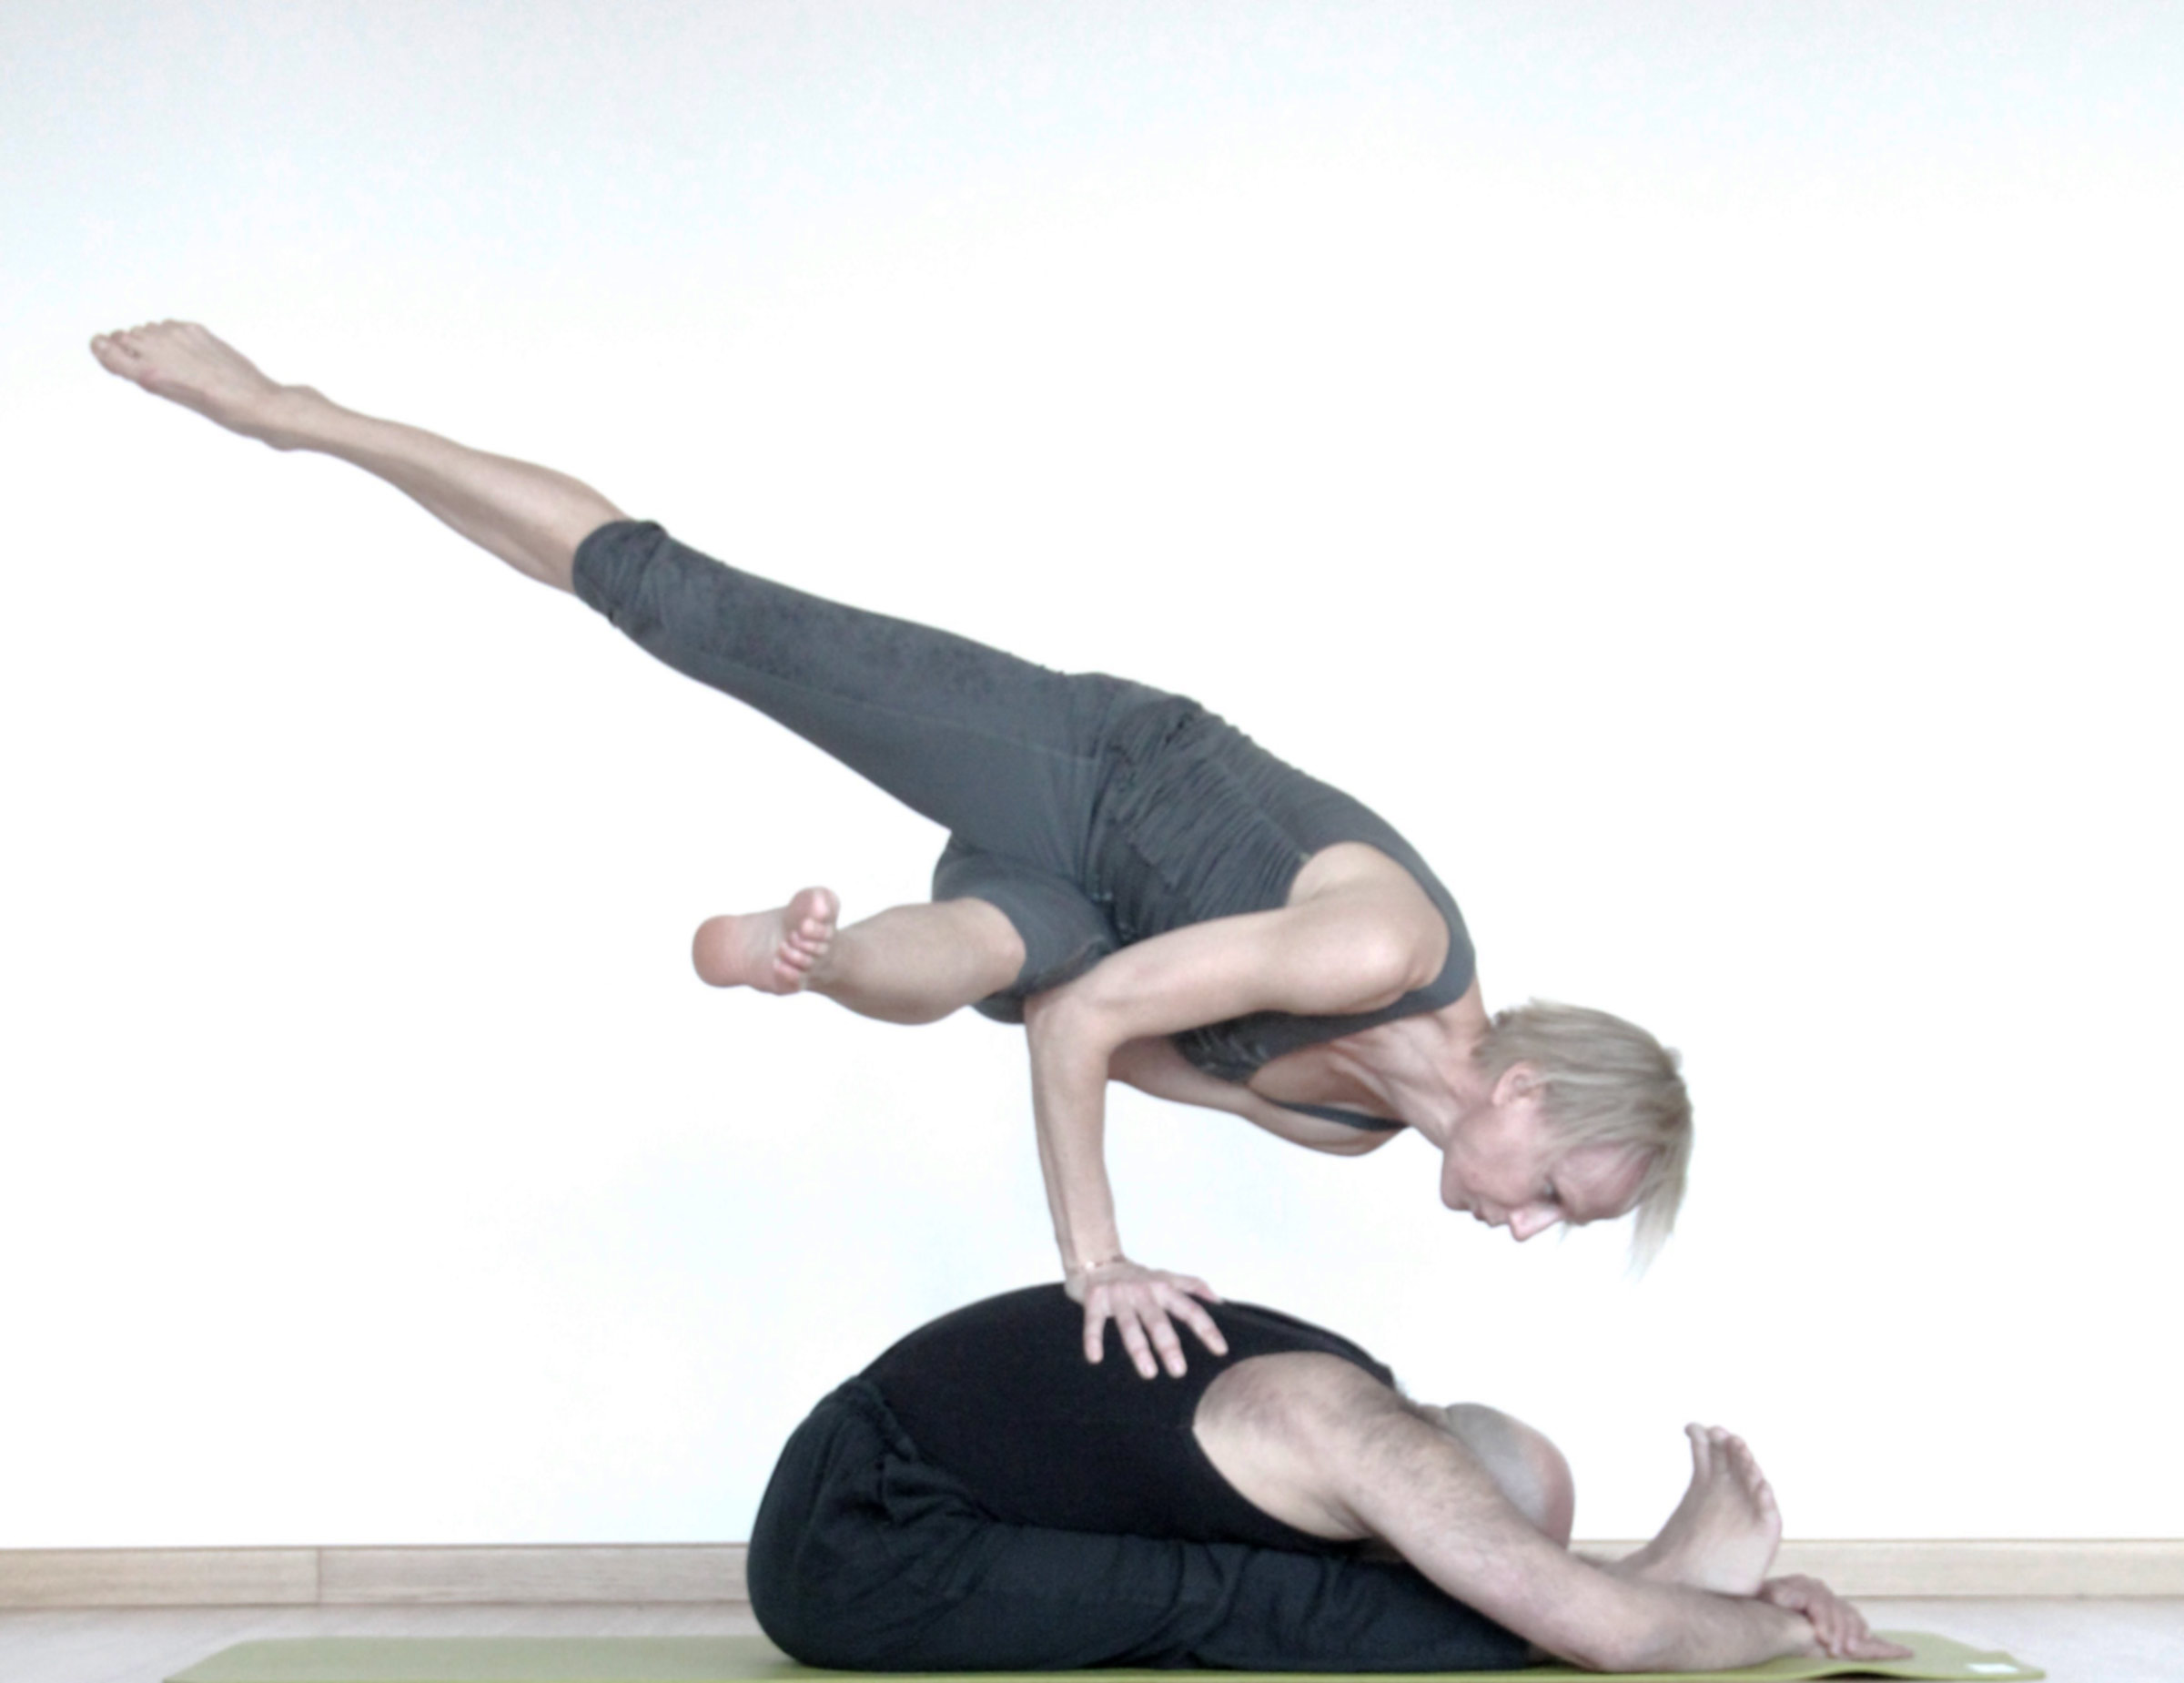 Acquiring skills at Santidas Yoga School, Brussels